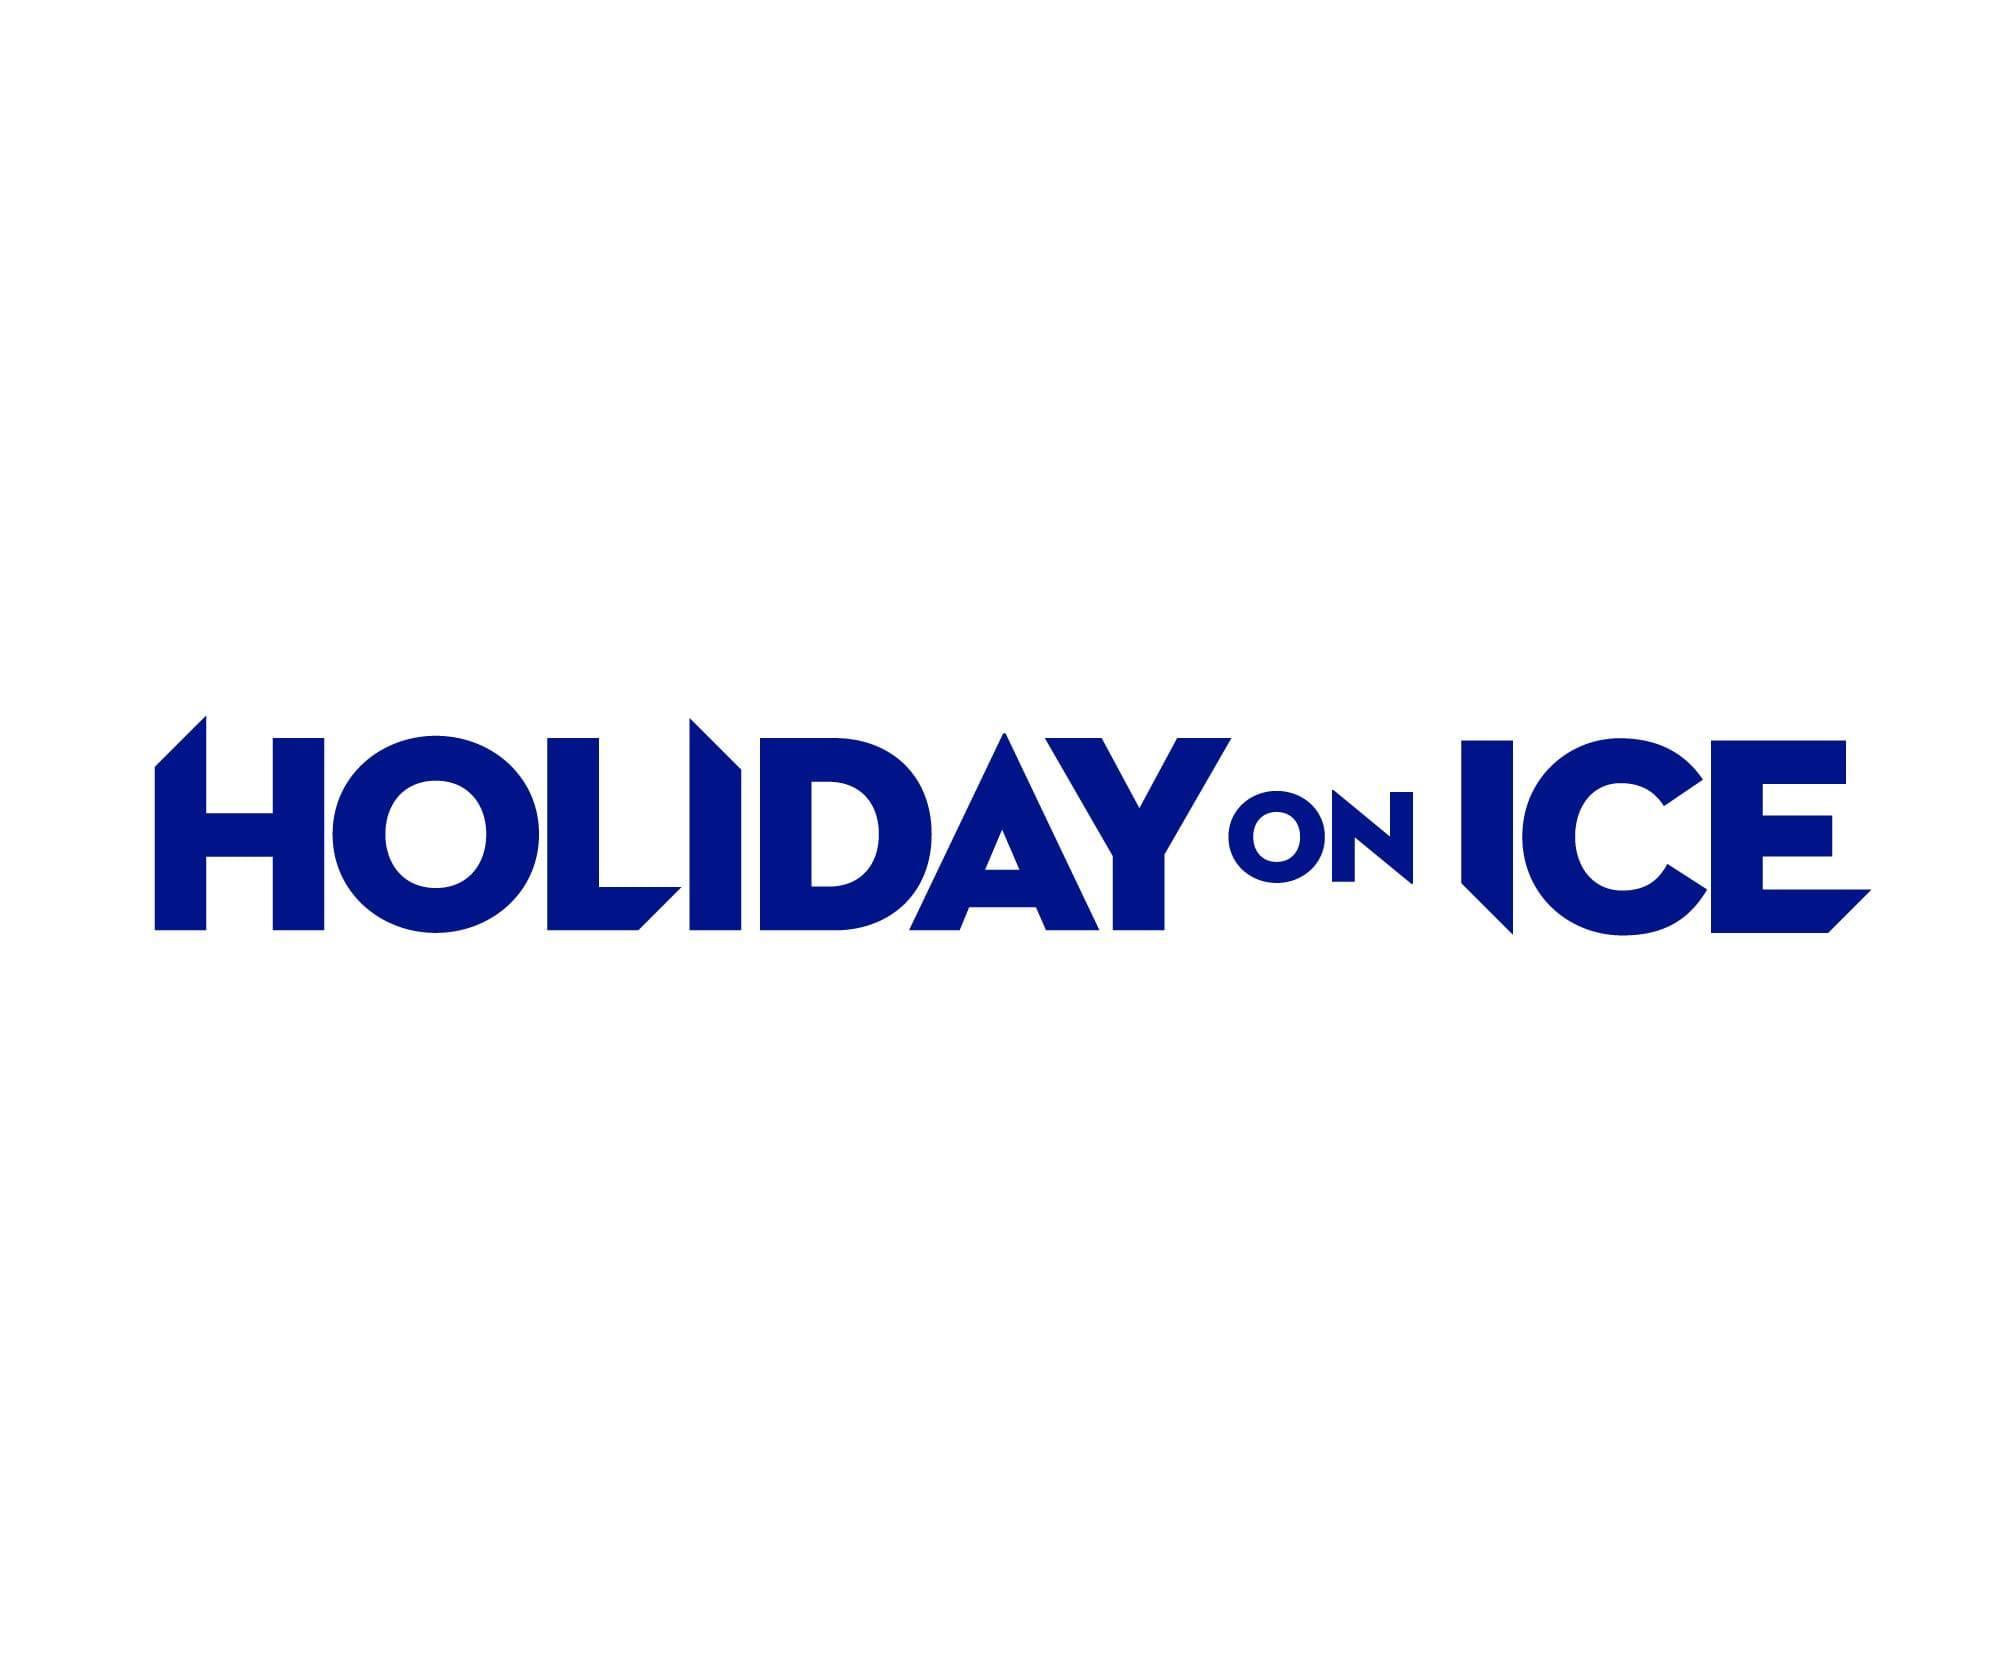 Holiday on Ice Productions Germany GmbH